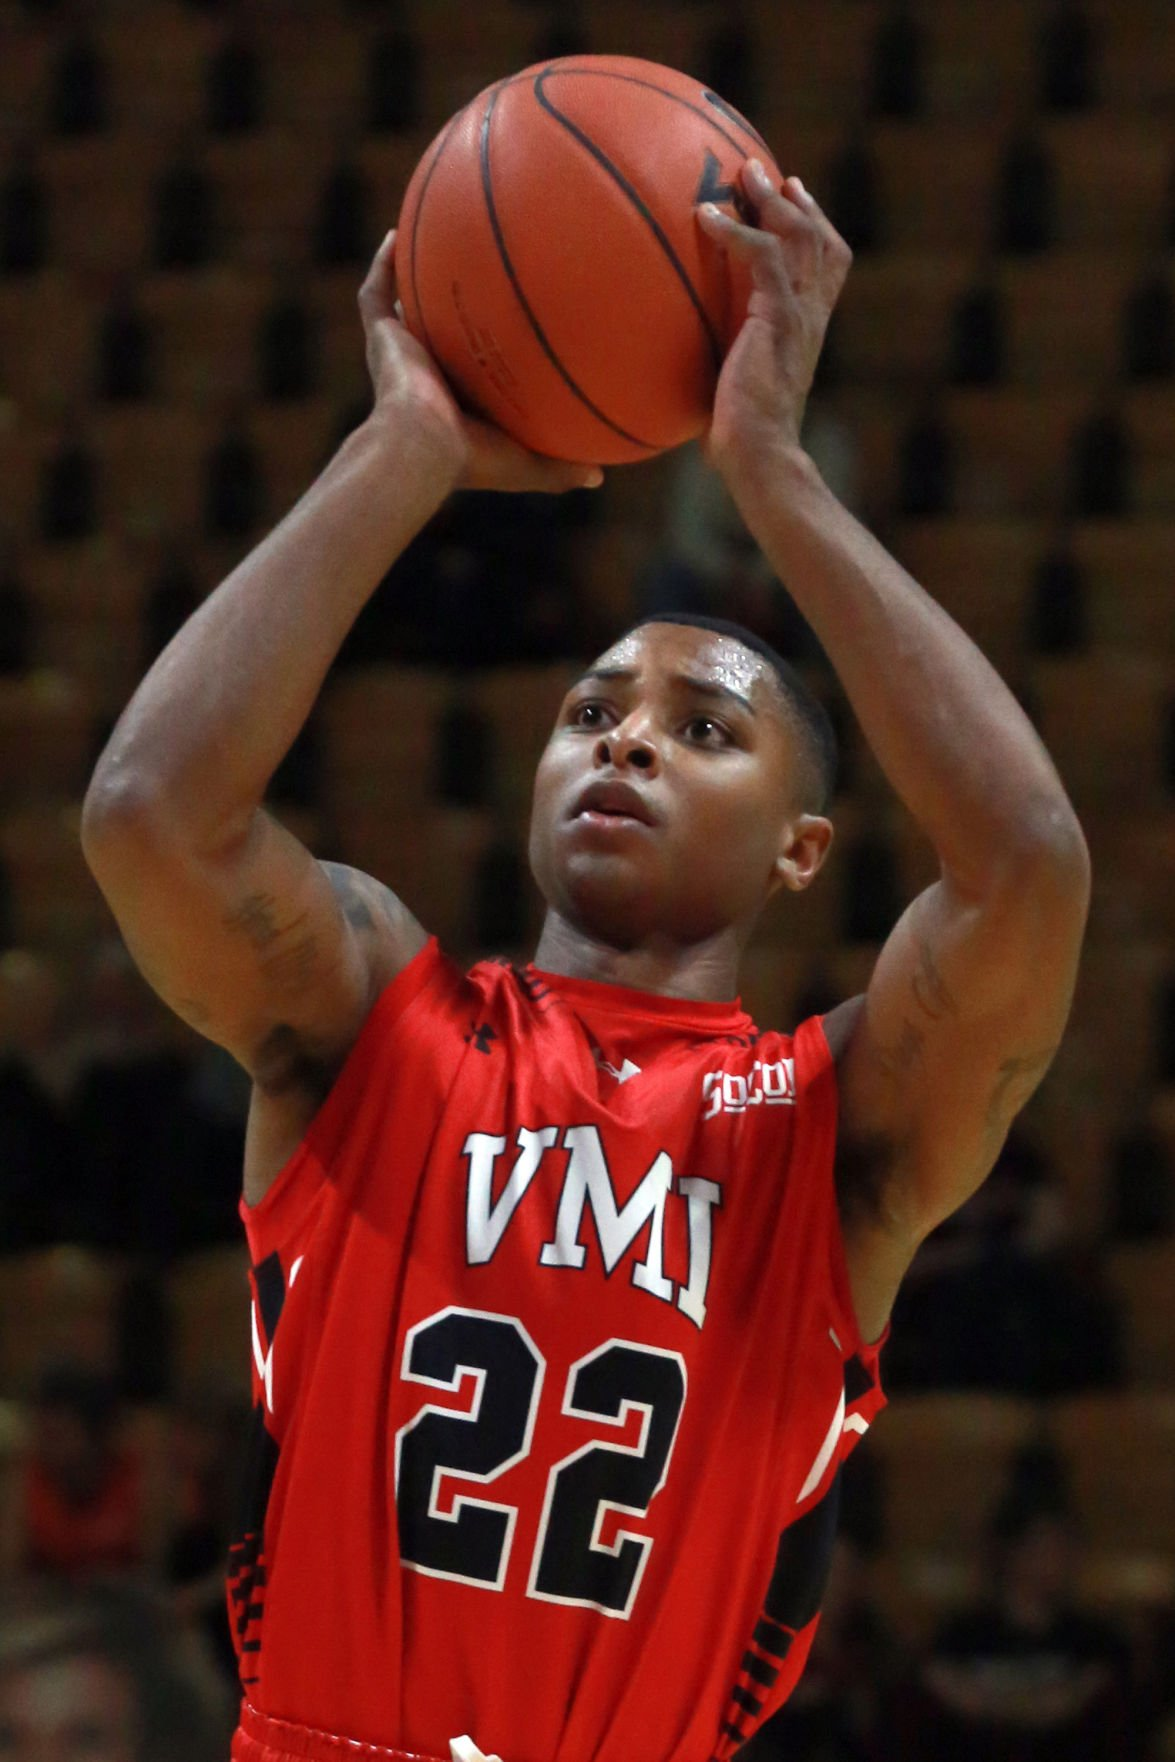 Vmi Calendar May : Vmi senior qj peterson named all socon acc